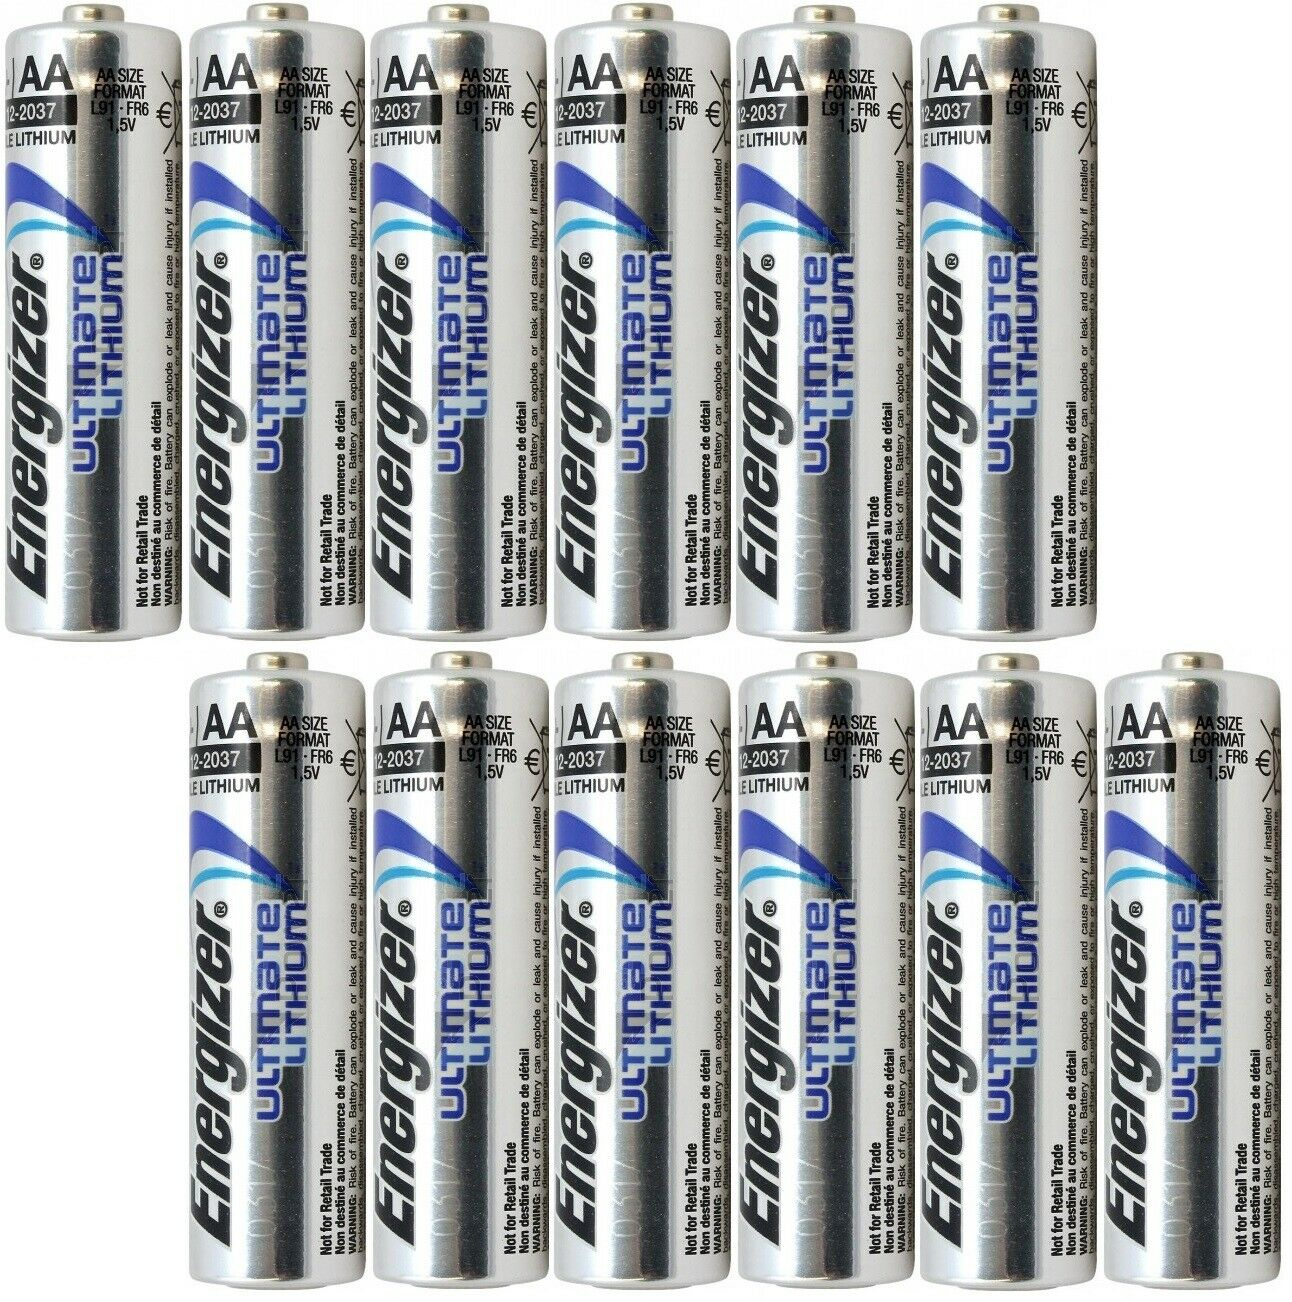 Pack of 12 AAA Energizer Ultimate Lithium Battery, Longest L